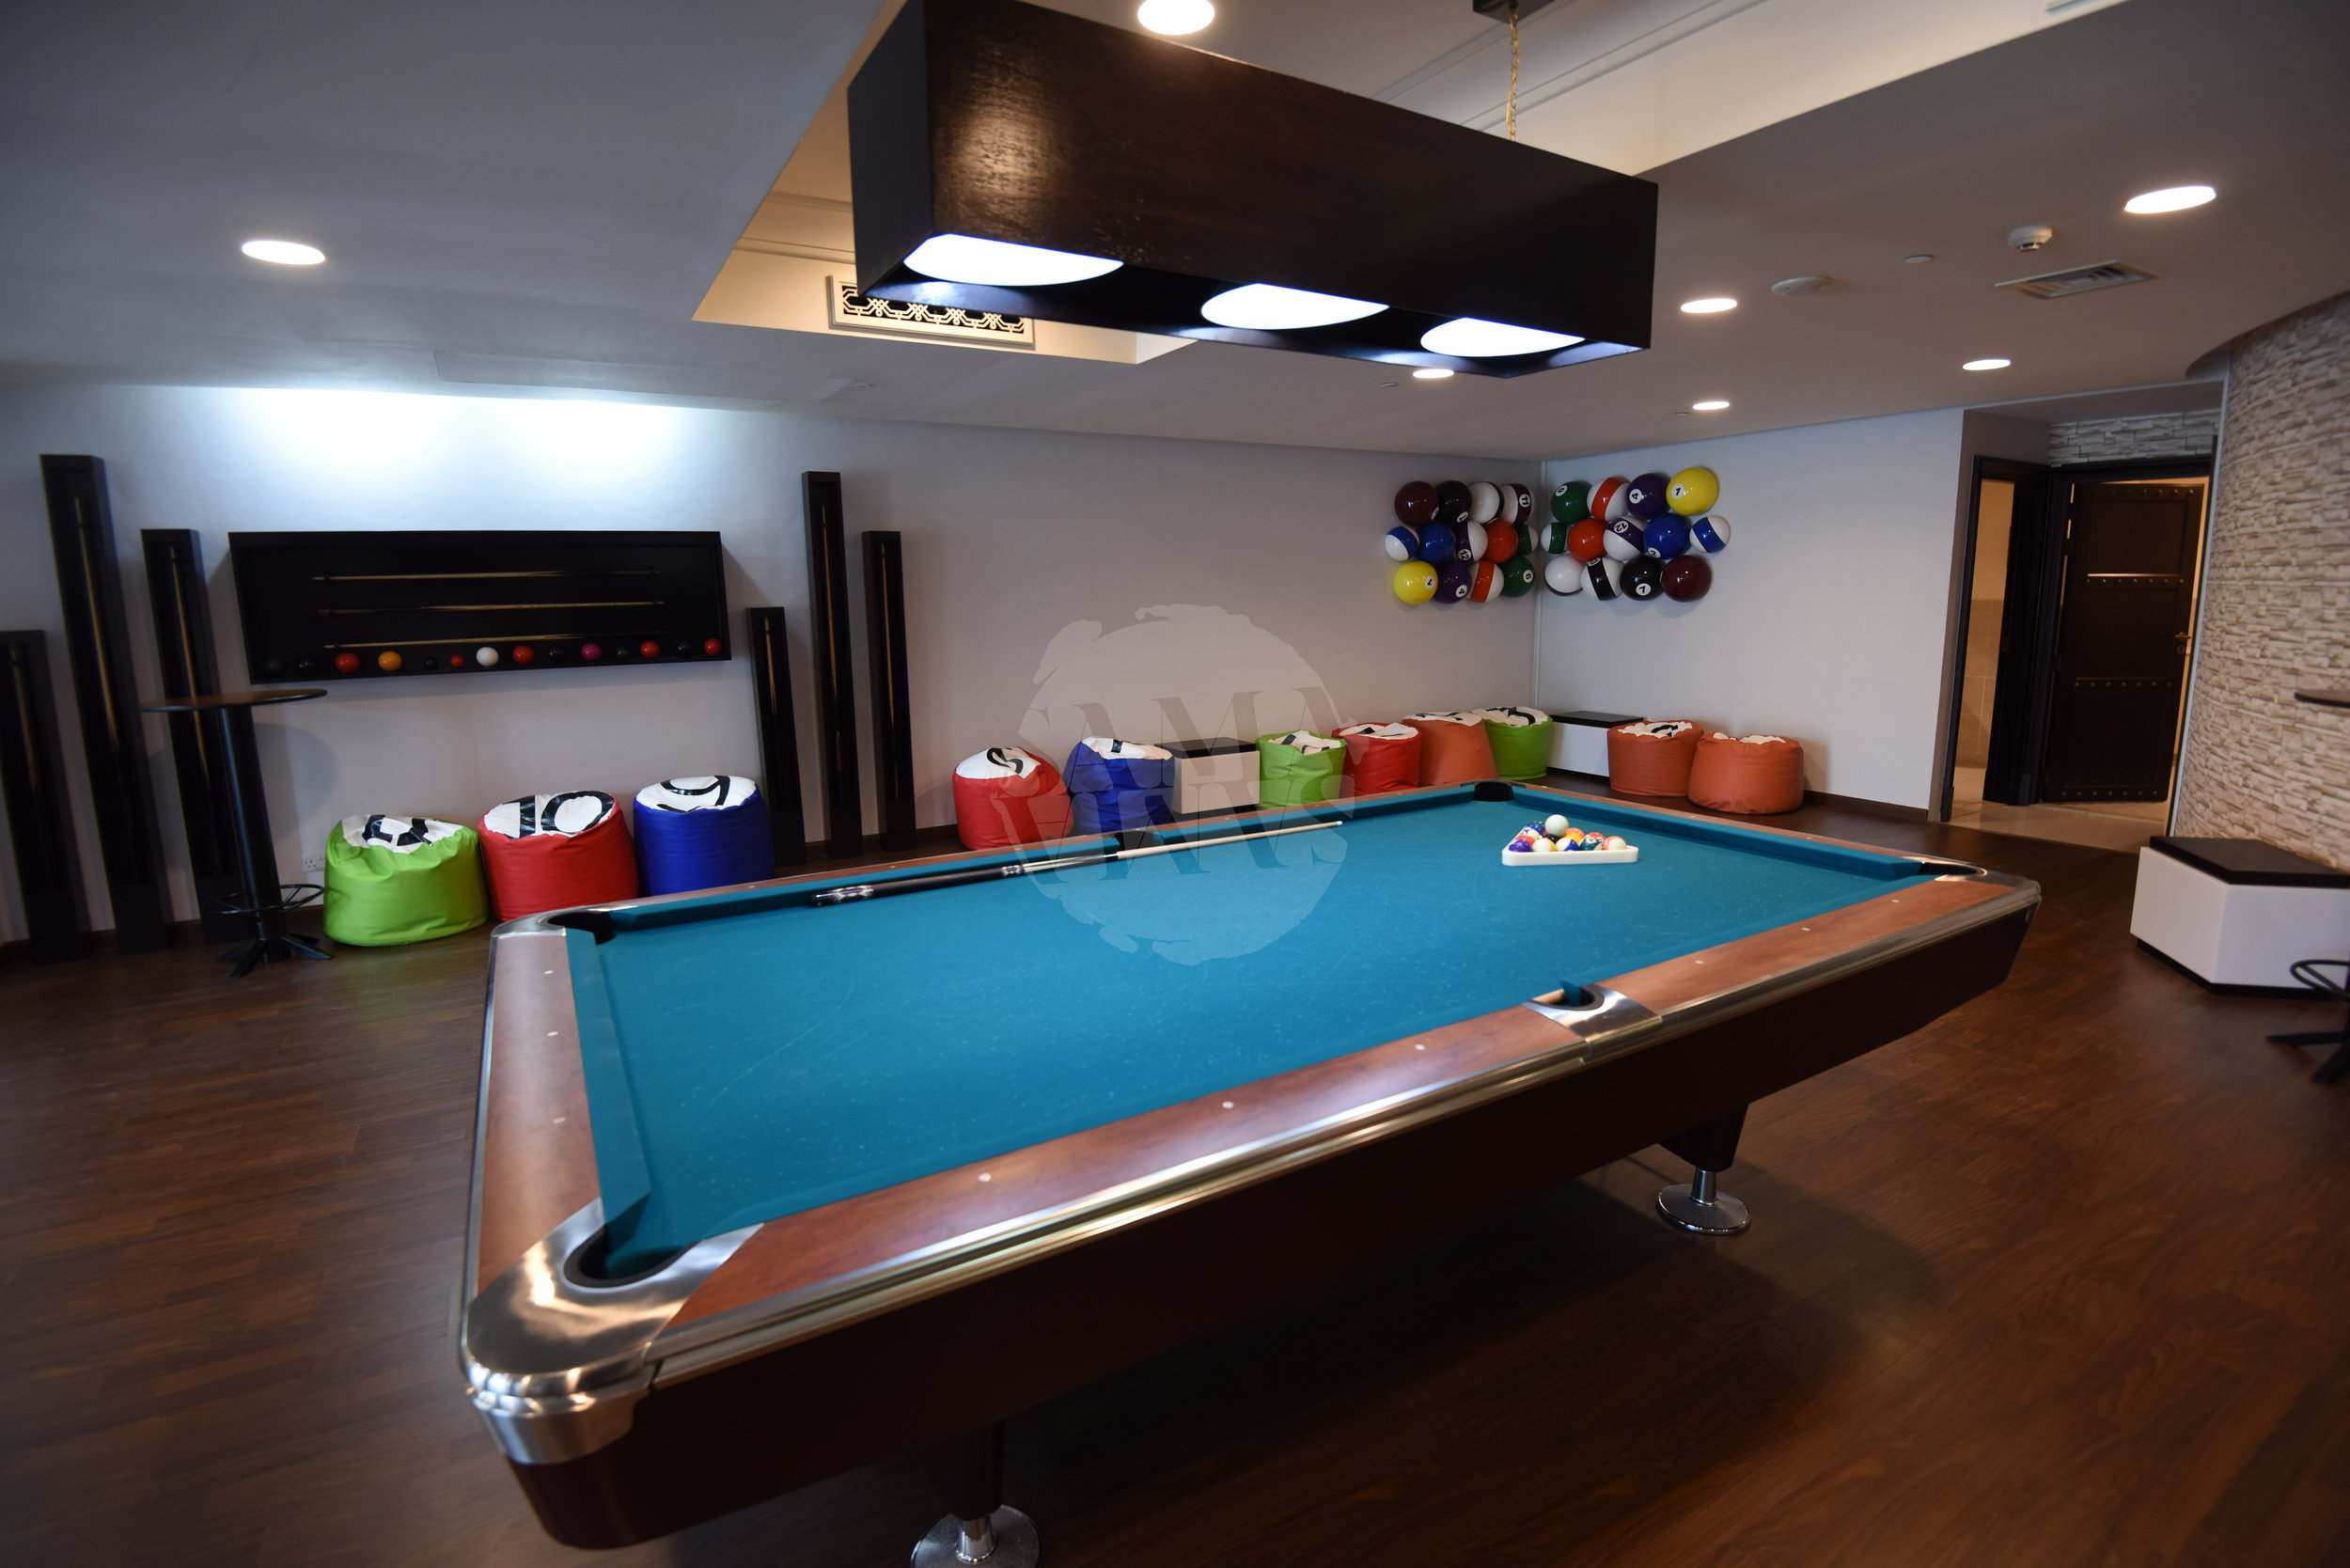 The billiards room is spacious and the perfect place to spend an afternoon